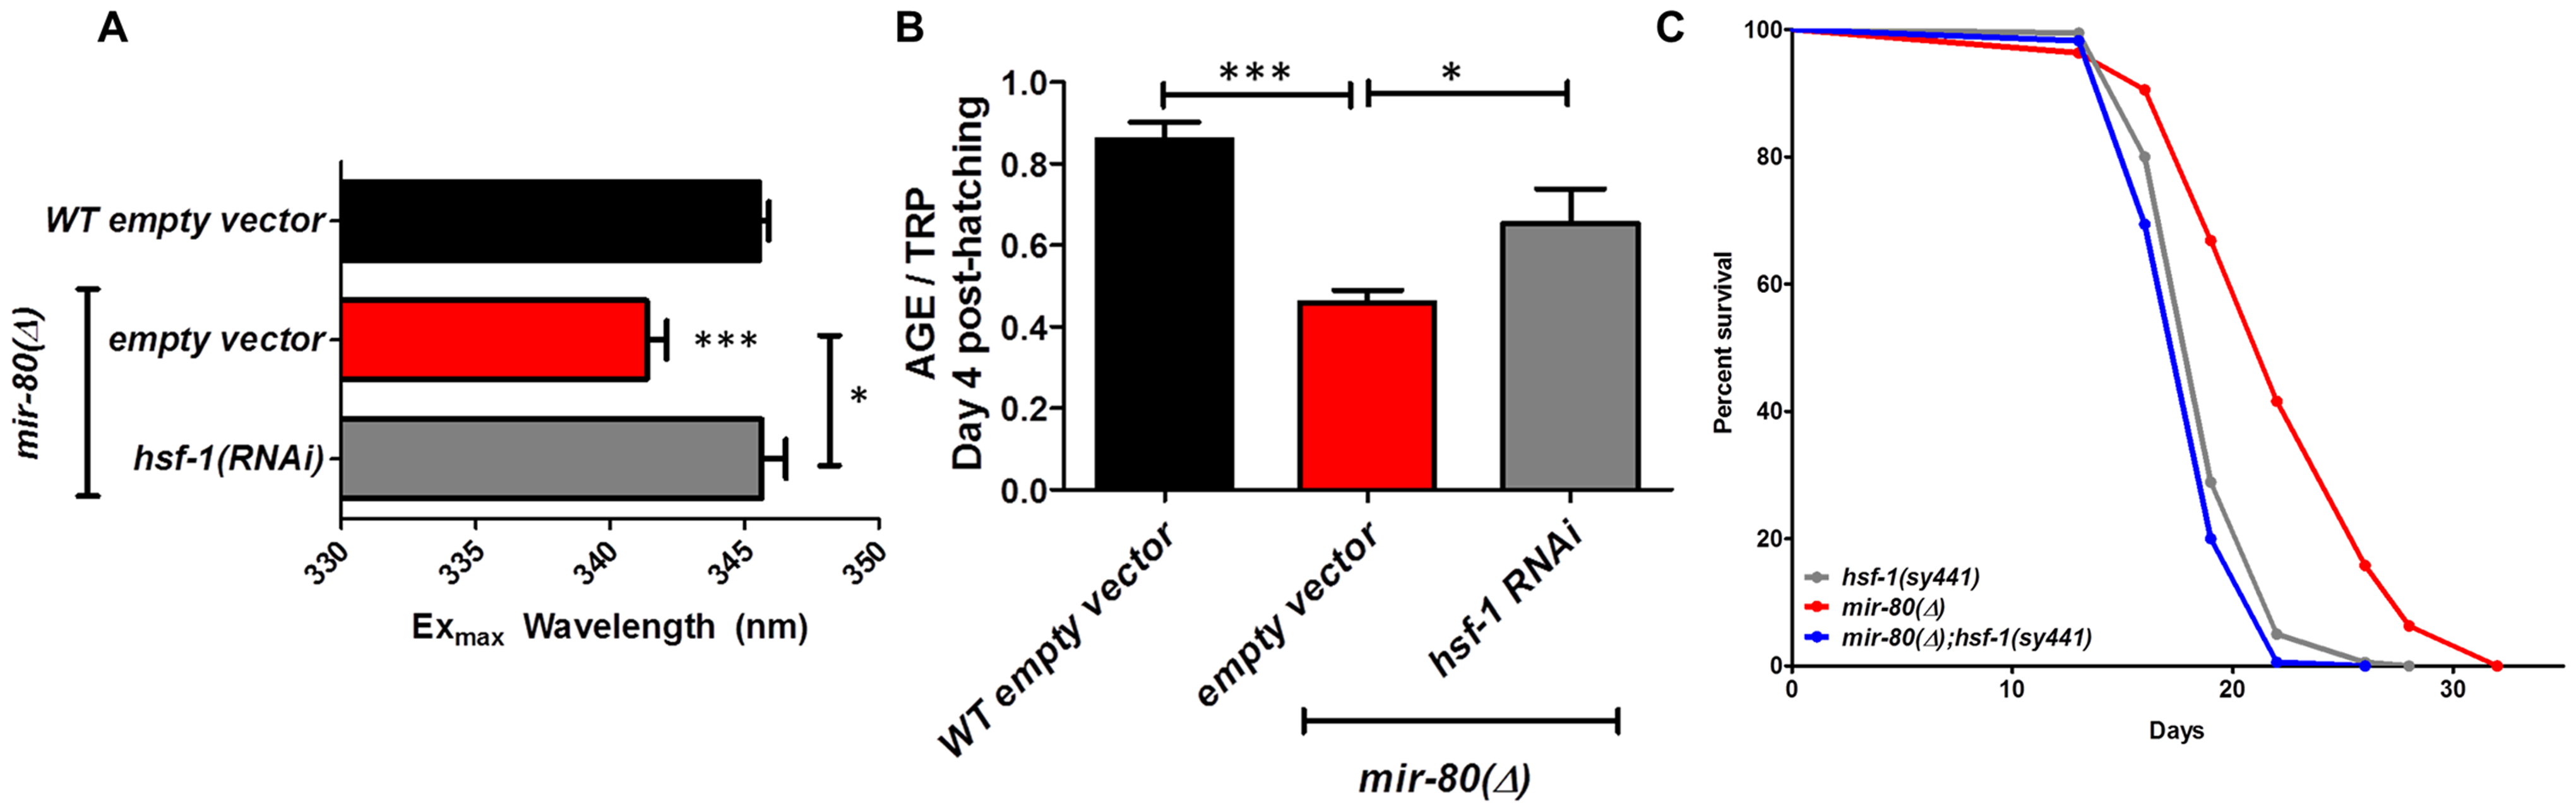 <i>hsf-1</i> is needed for the fluorimetric DR signature and longevity phenotypes of <i>mir-80</i>(Δ).